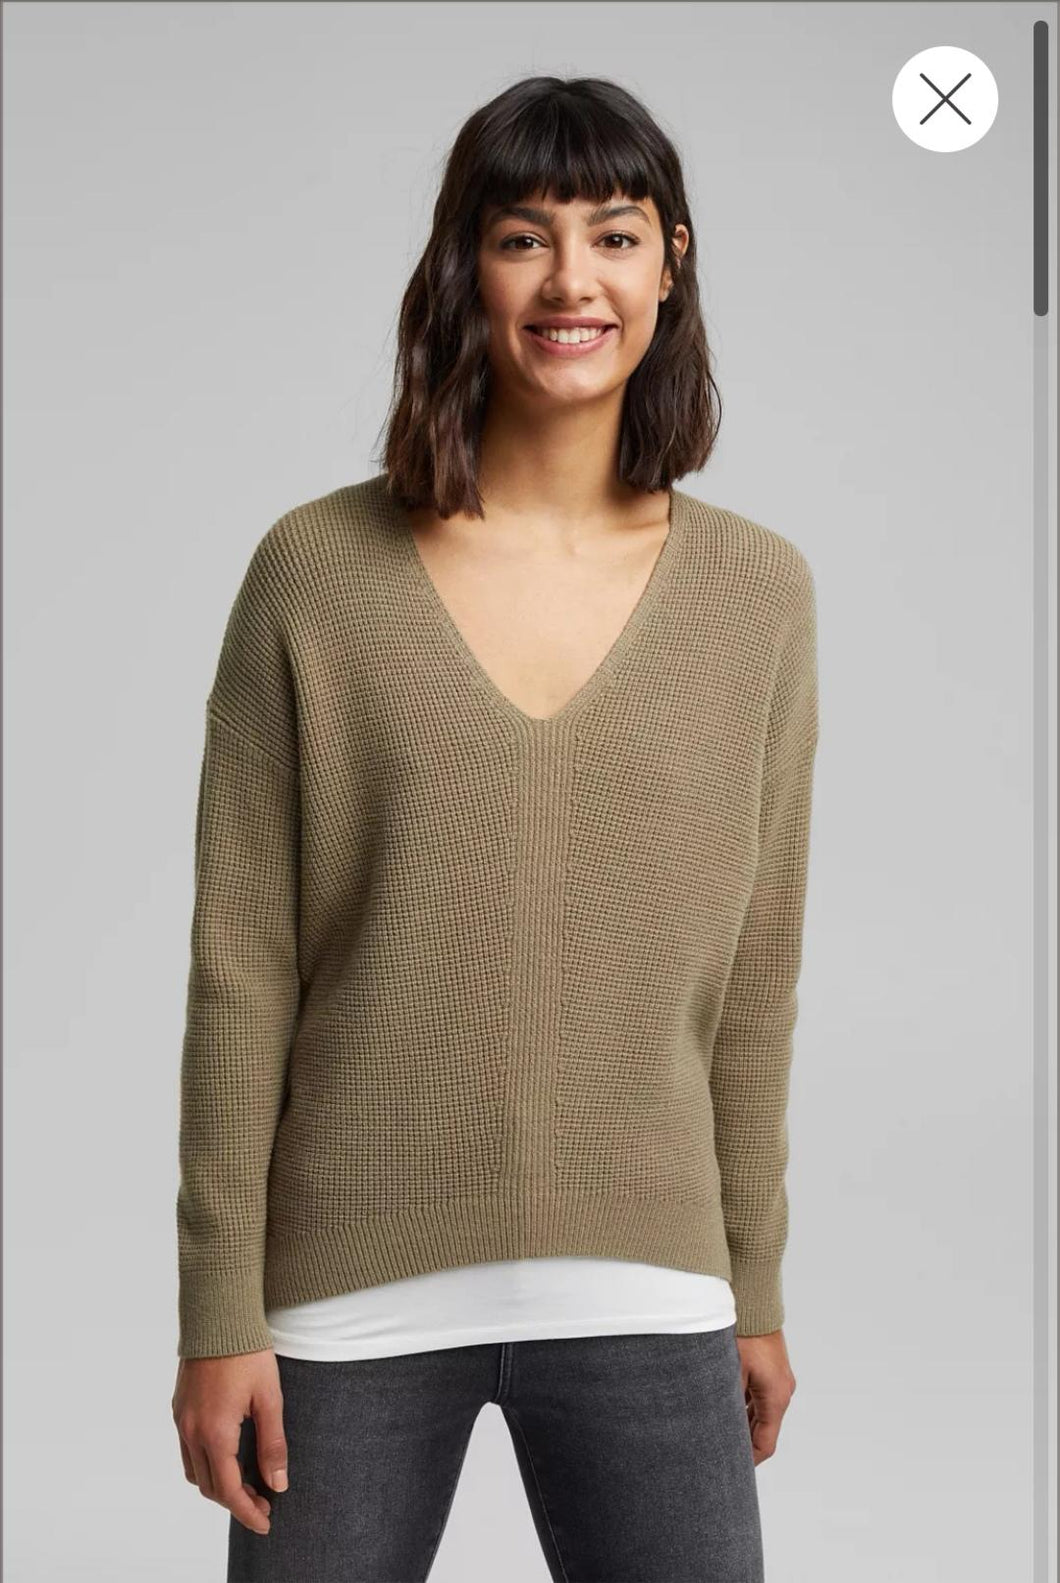 V-Neck Sweater with Rice Grain Texture - Green Khaki